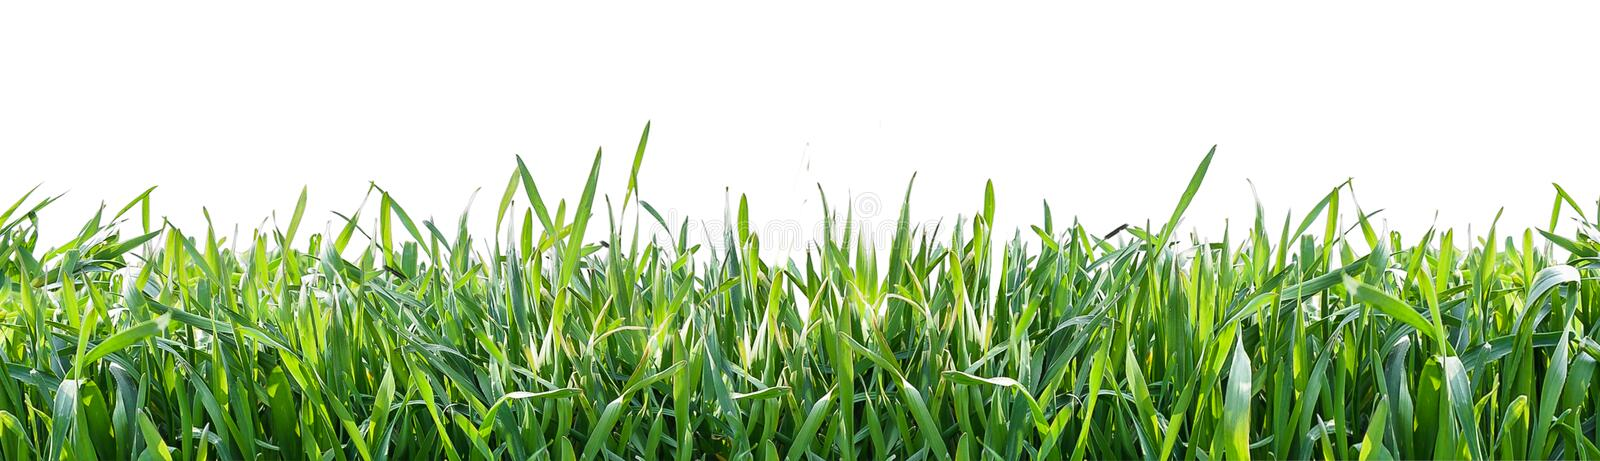 Green grass isolated on white background. Natural background royalty free stock photos